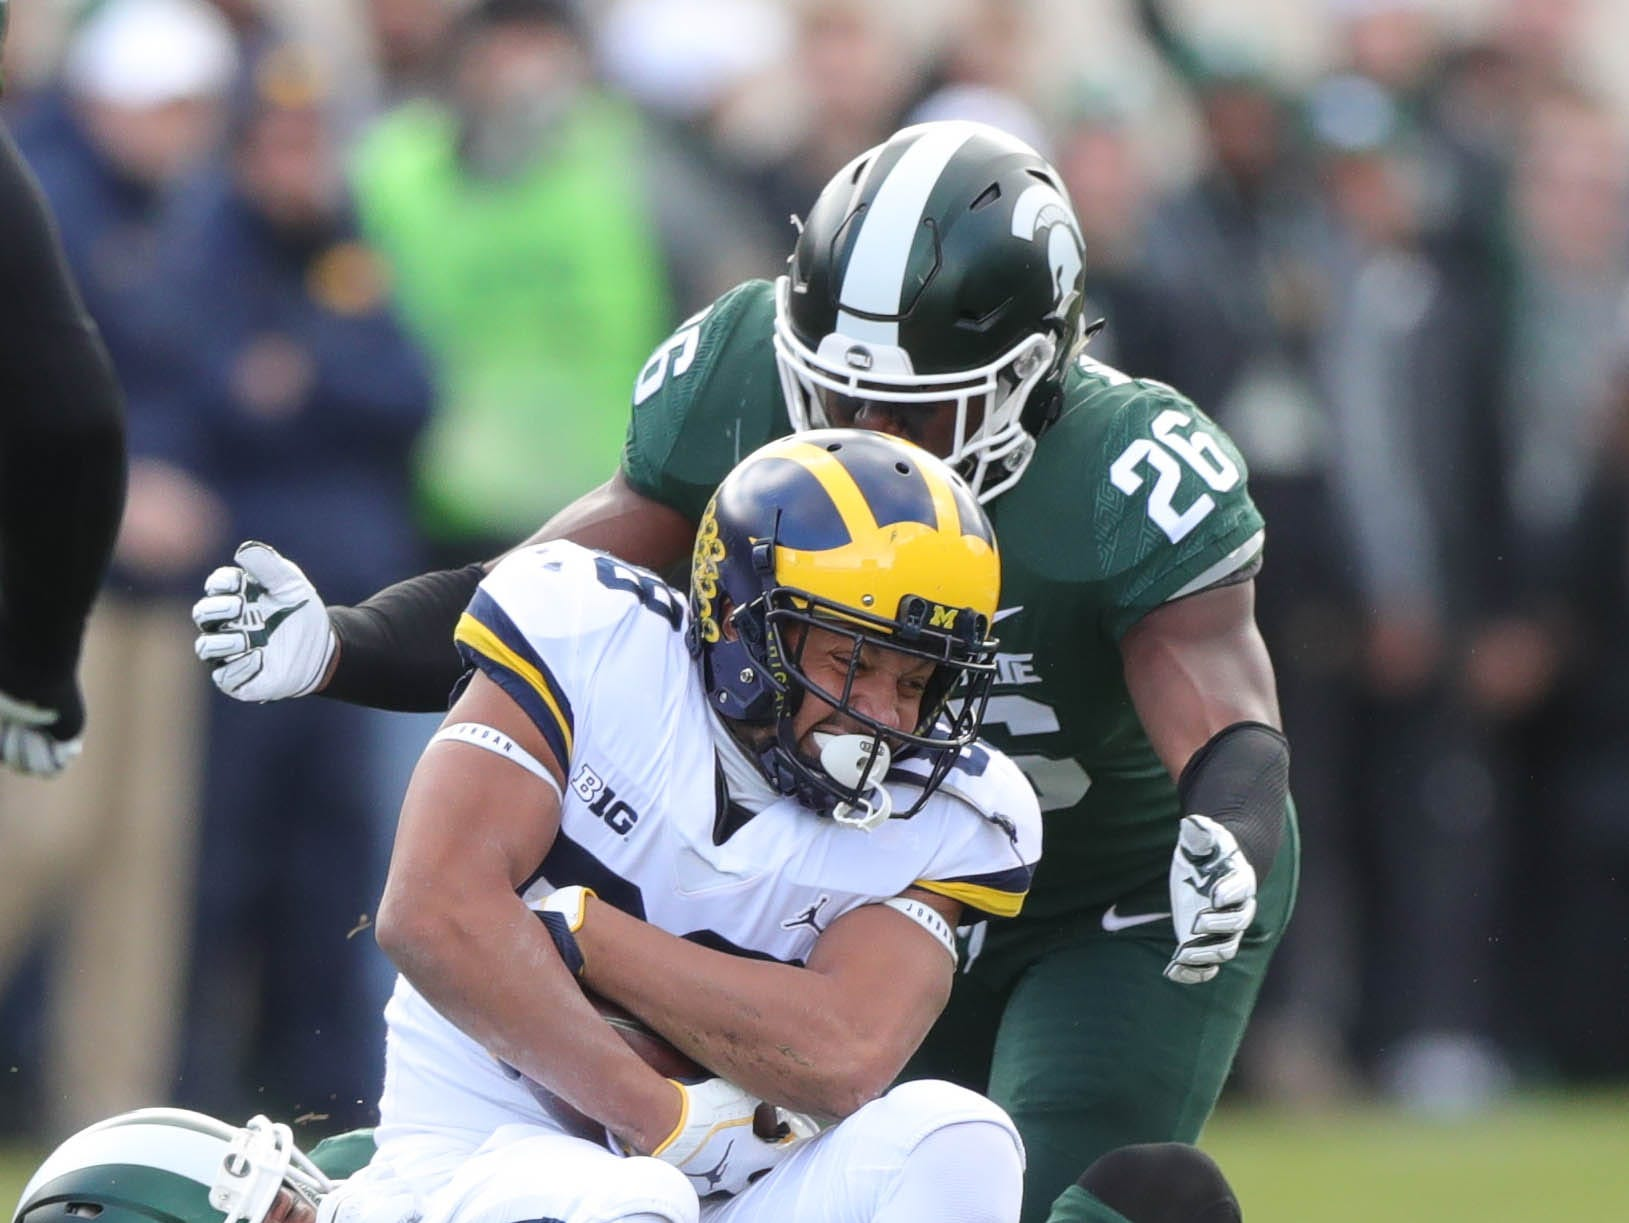 Michigan wide receiver Grant Perry is tackled by Michigan State safety Khari Willis, bottom, and Brandon Bouyer-Randle during the first half on Saturday, Oct. 20, 2018, at Spartan Stadium.